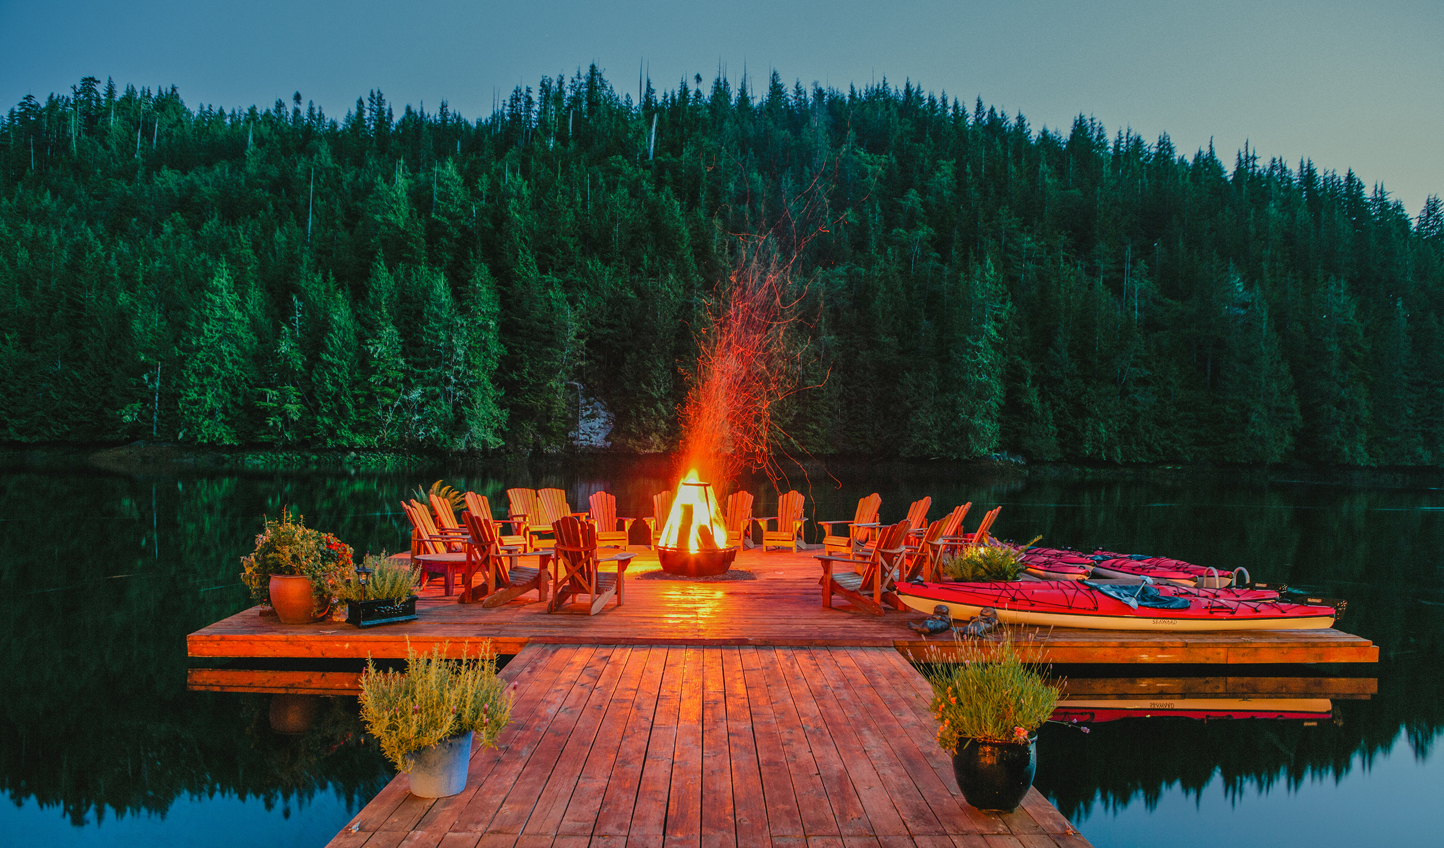 Pull up a chair and swap stories on the floating fire dock